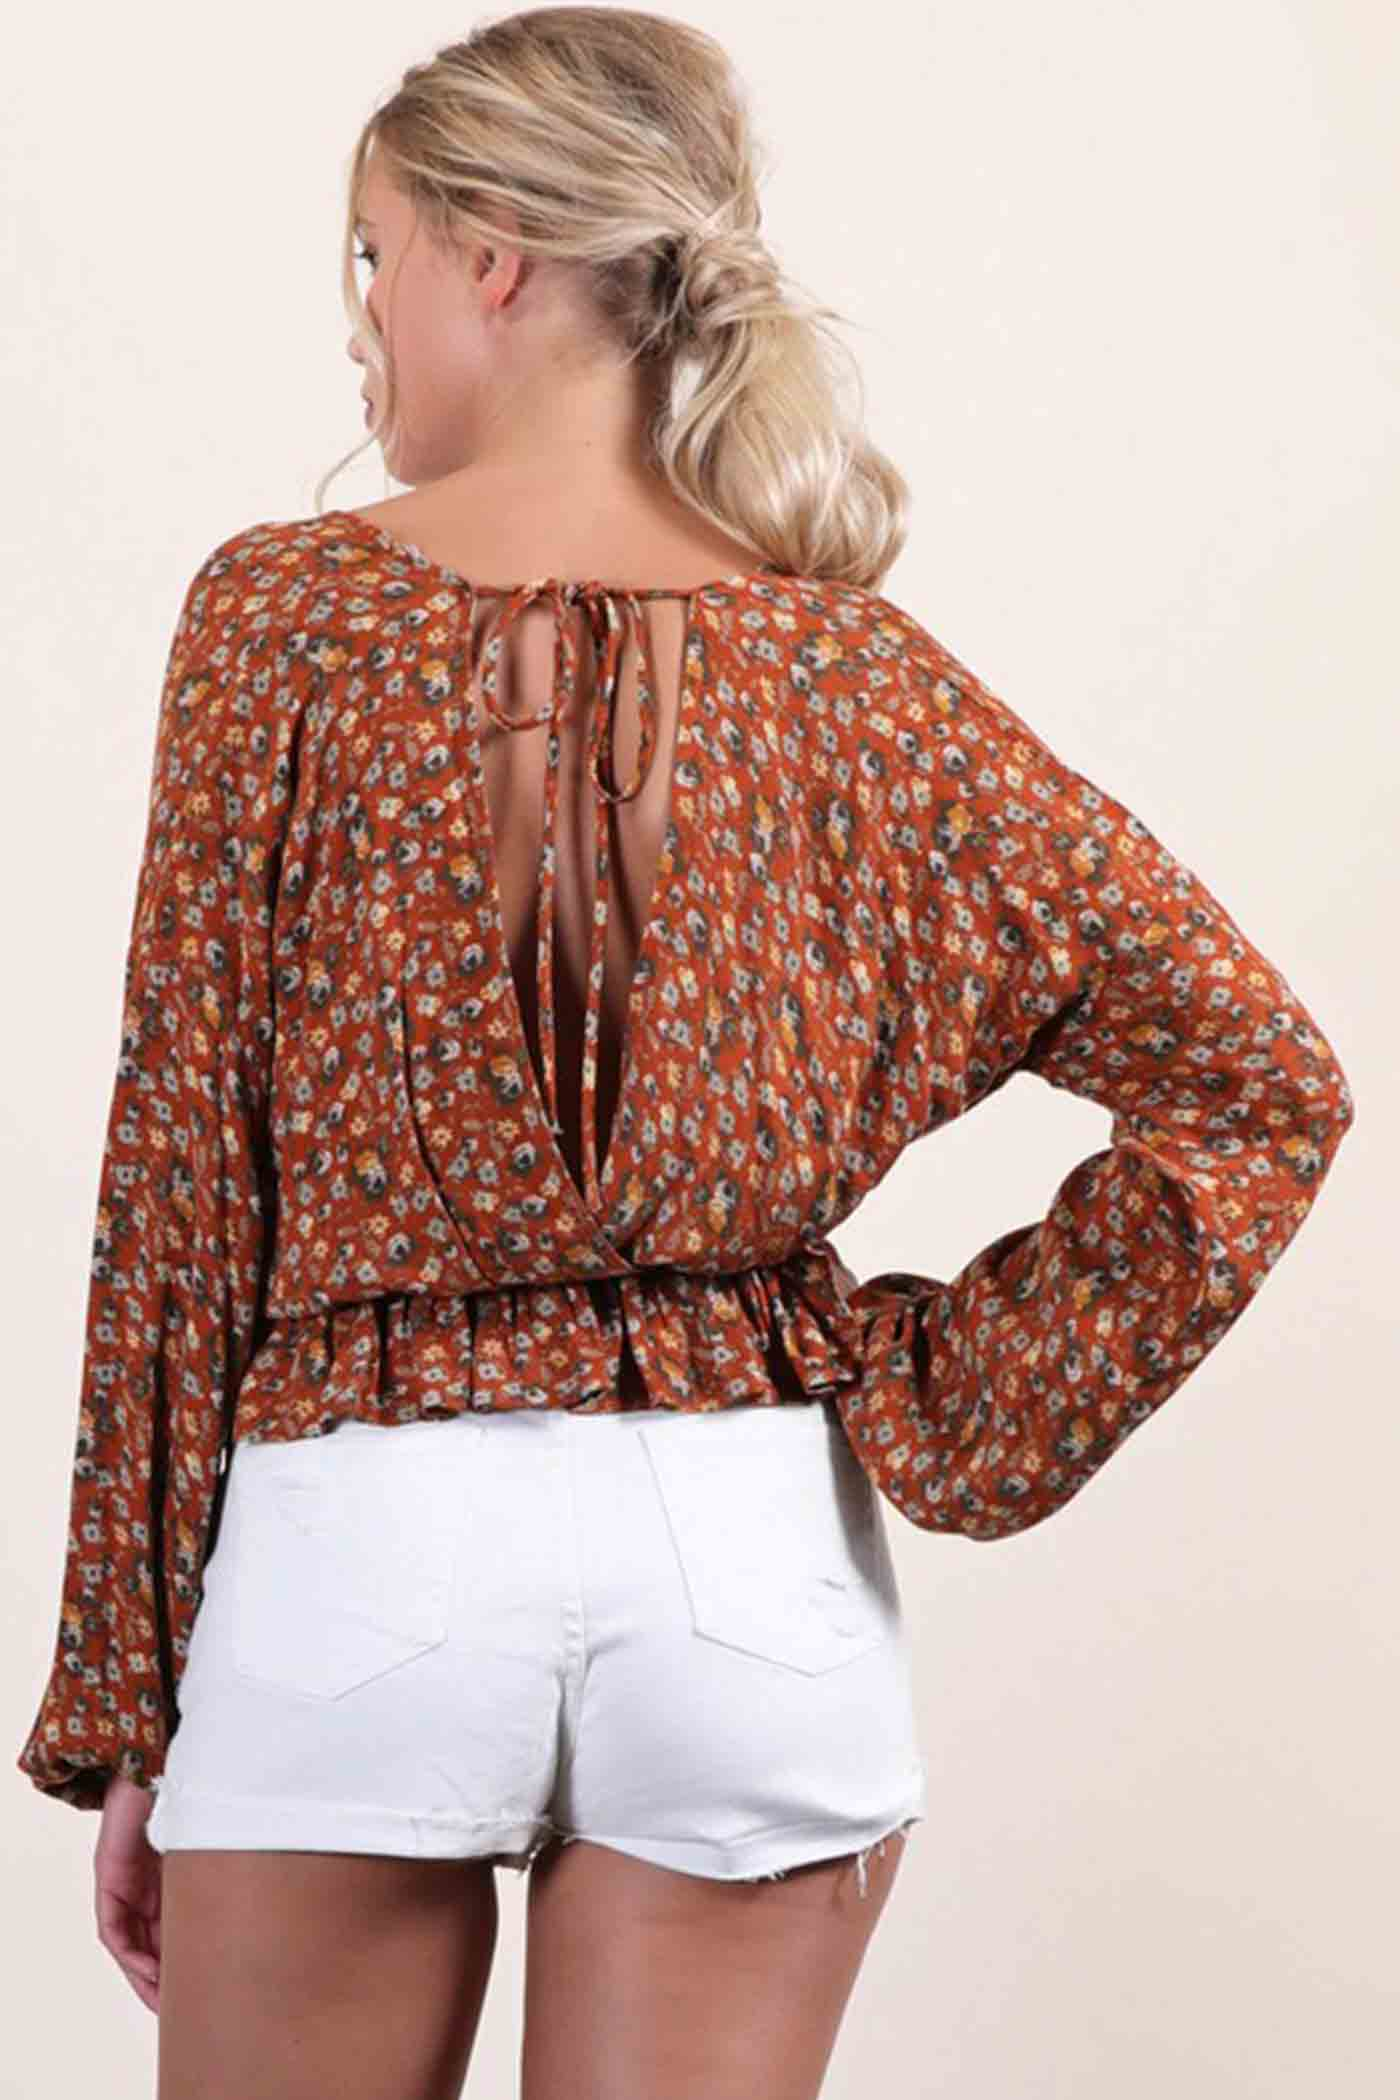 Flower Child Top